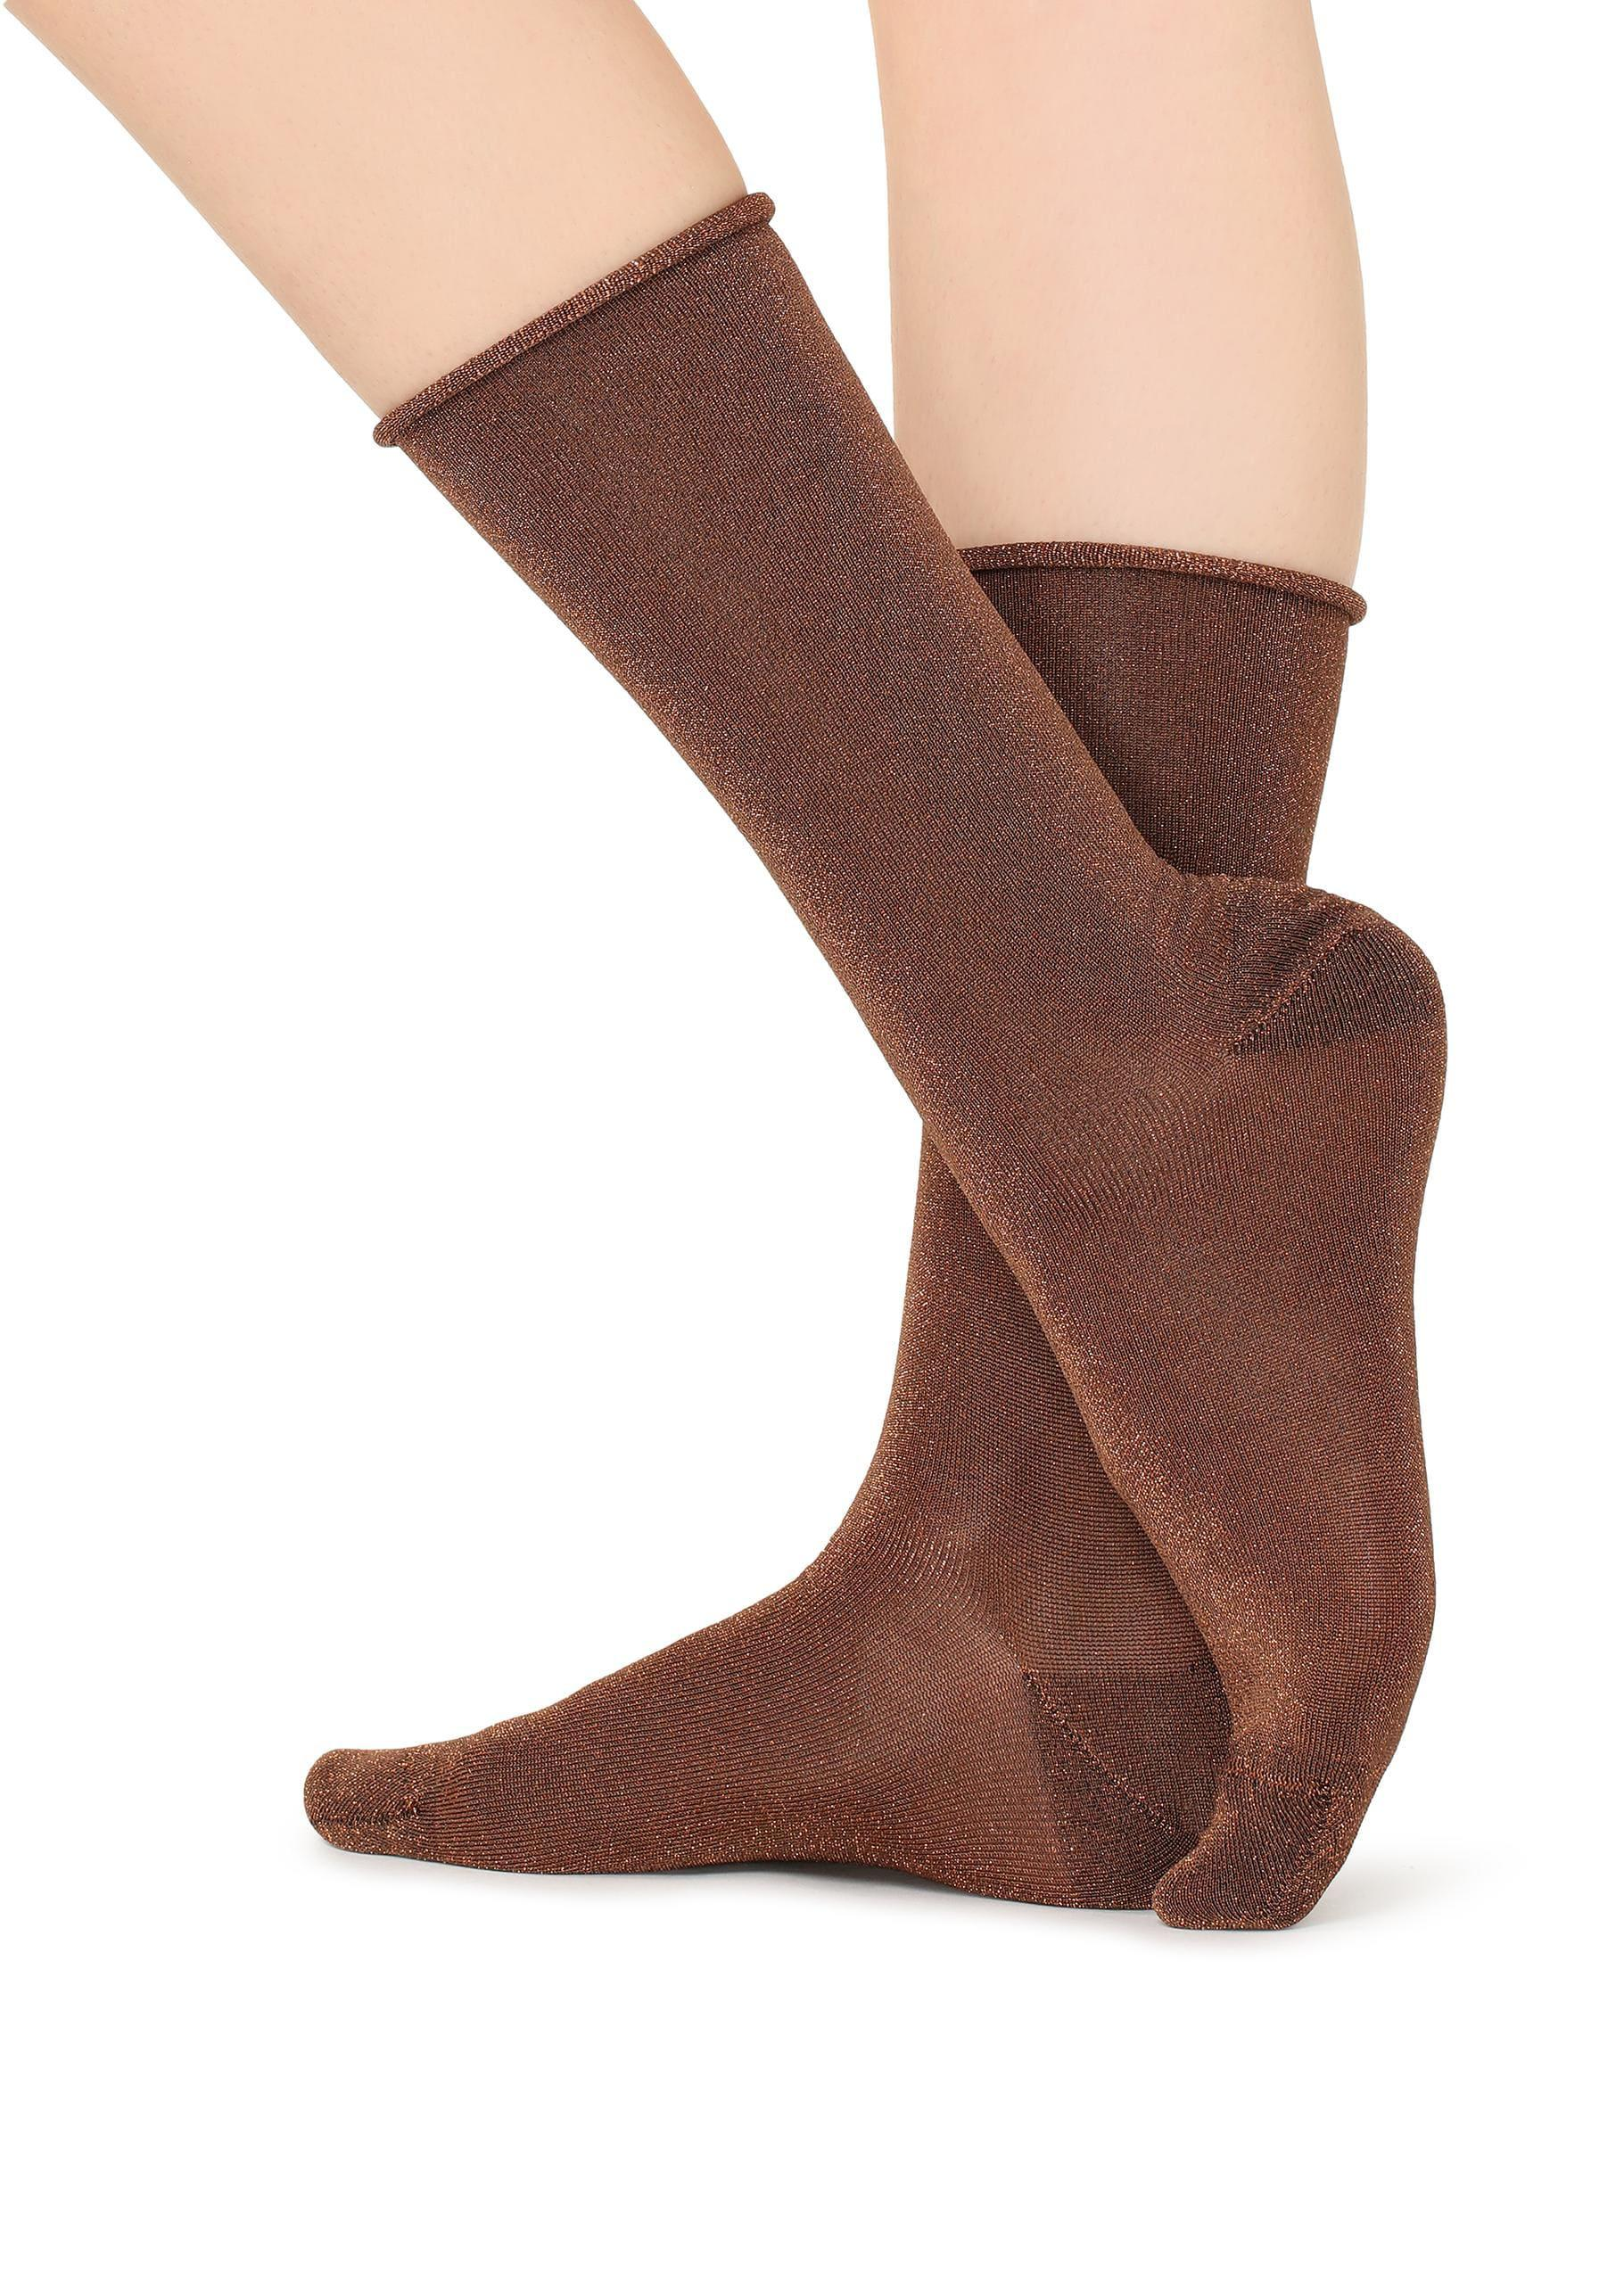 727e354fb Lyst - Calzedonia Tall Patterned Socks in Brown